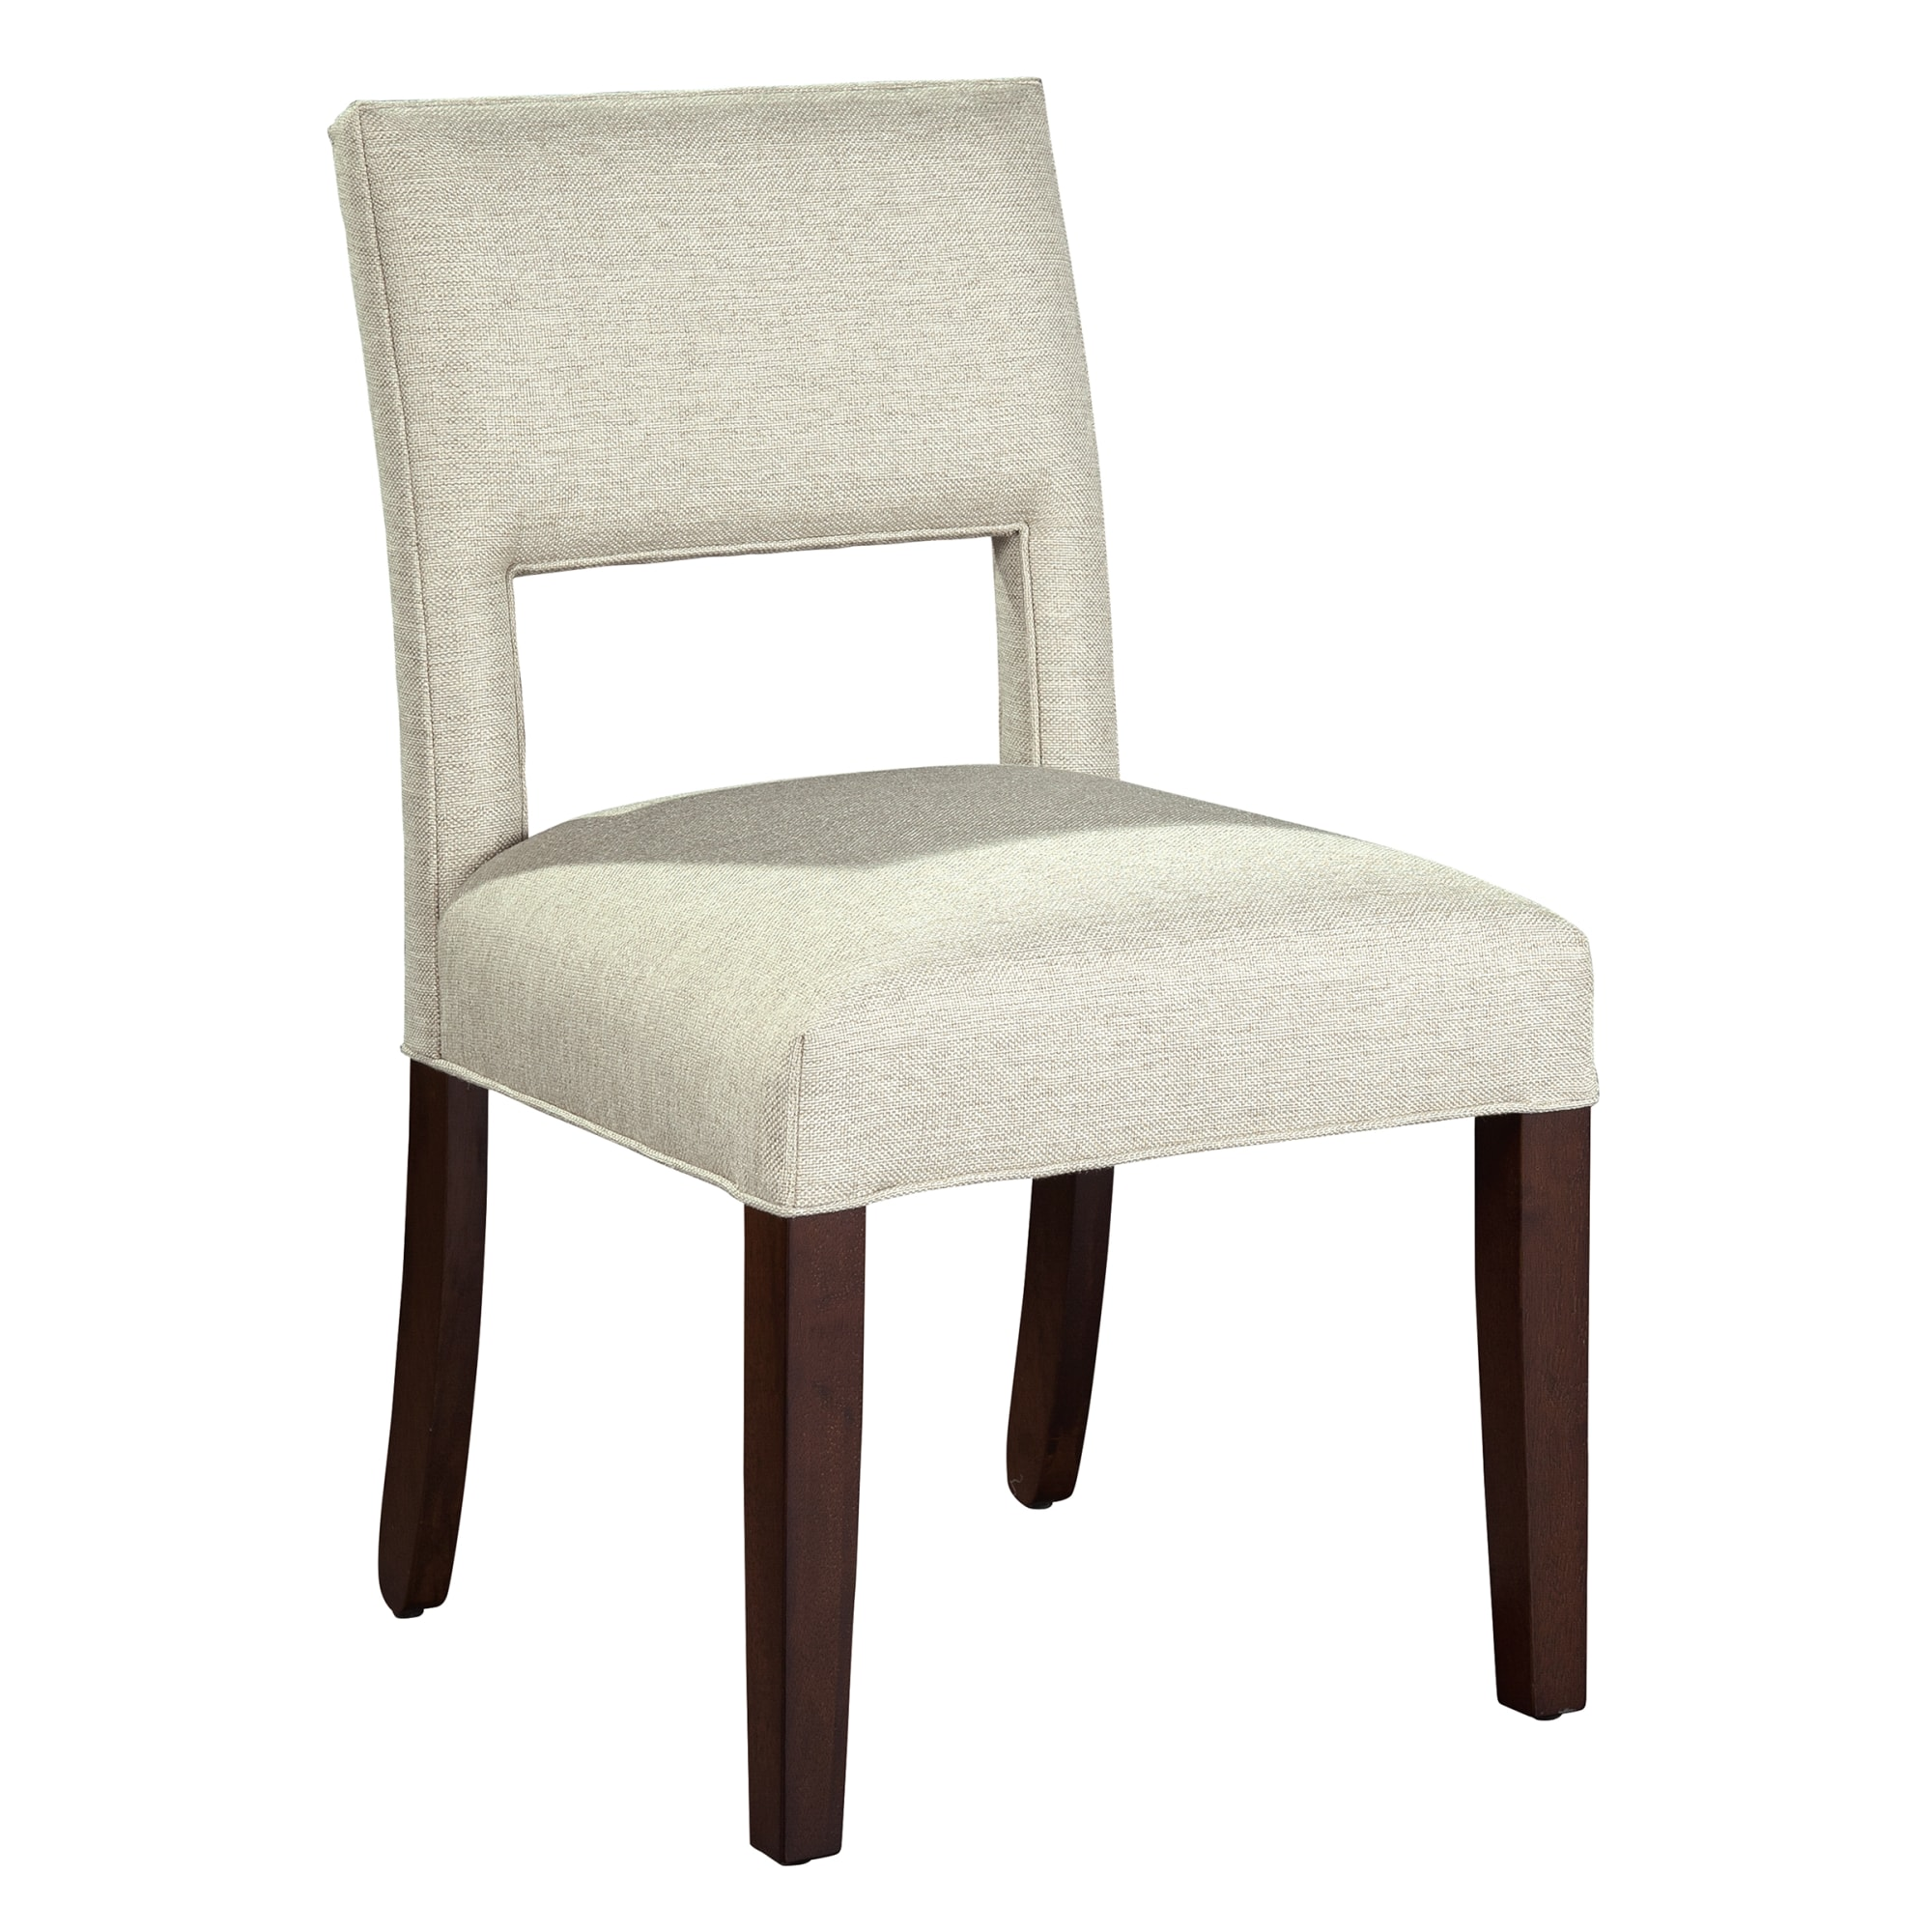 Image for 7276 Maddox Dining Chair from Hekman Official Website